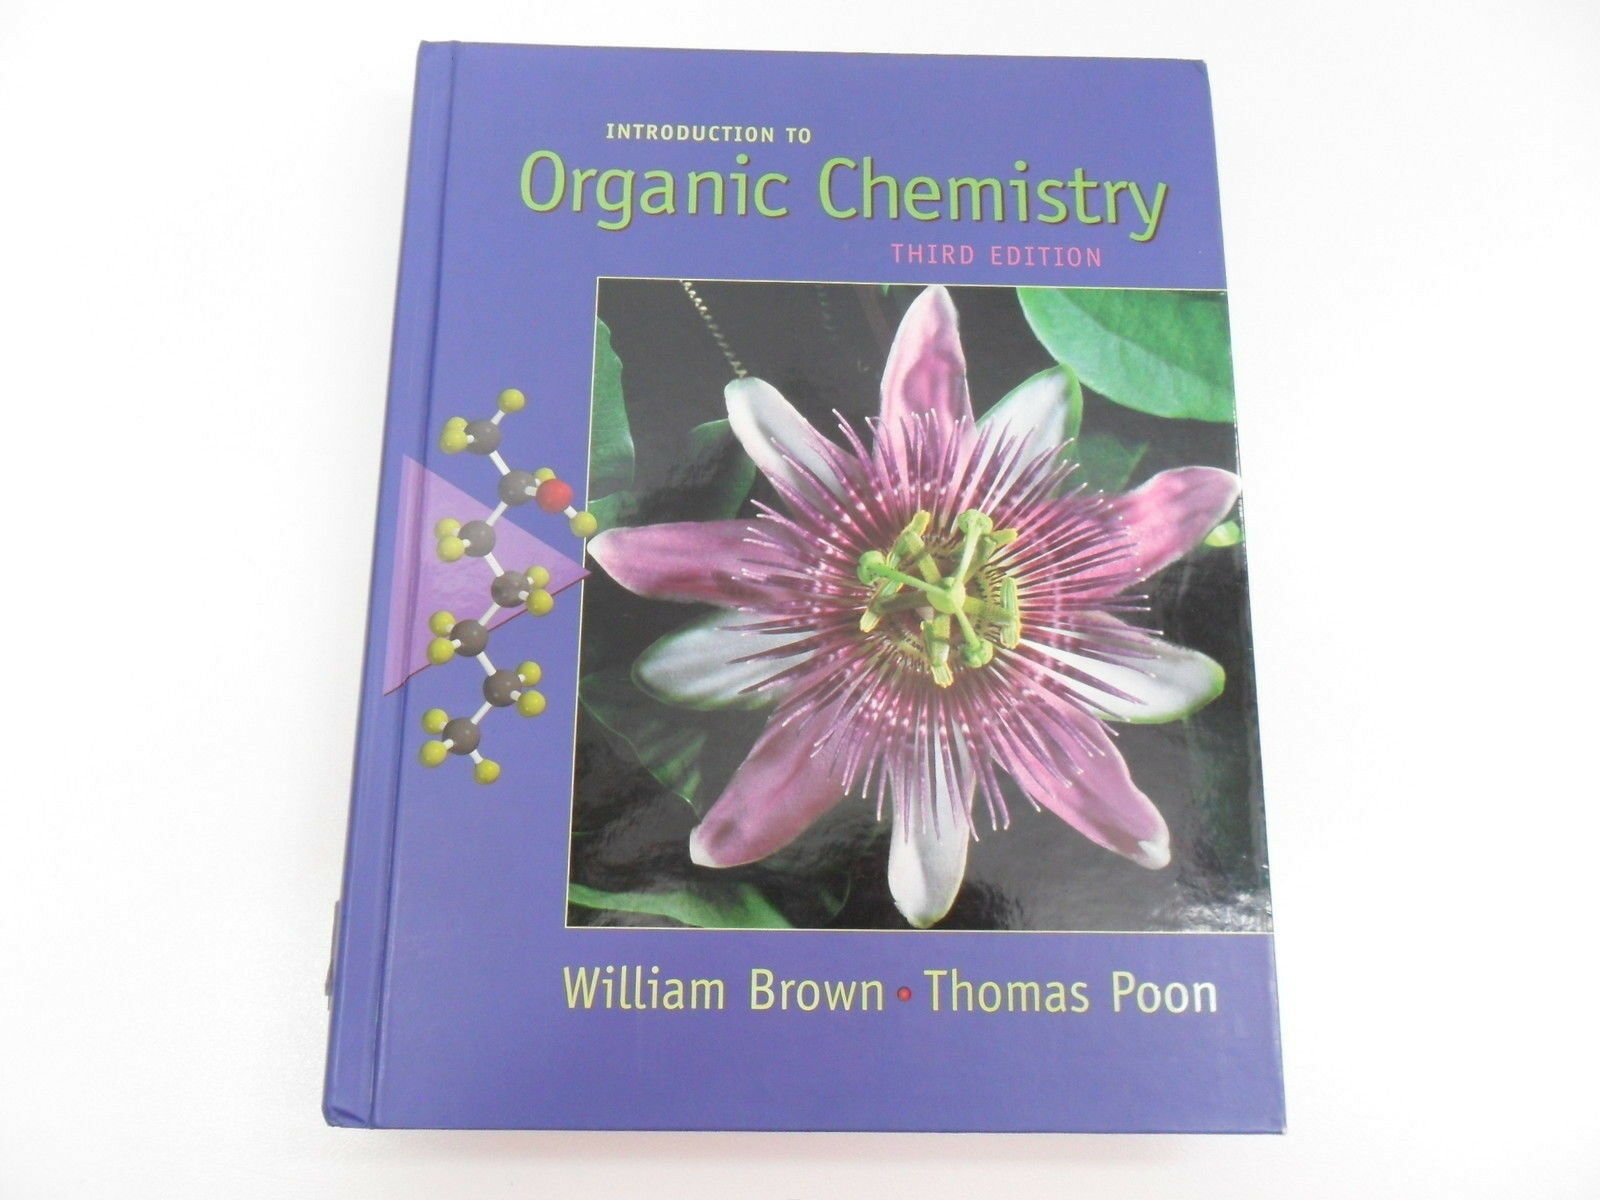 Introduction to Organic Chemistry by William Henry Brown, Thomas Poon  (Hardback, 2004) | eBay